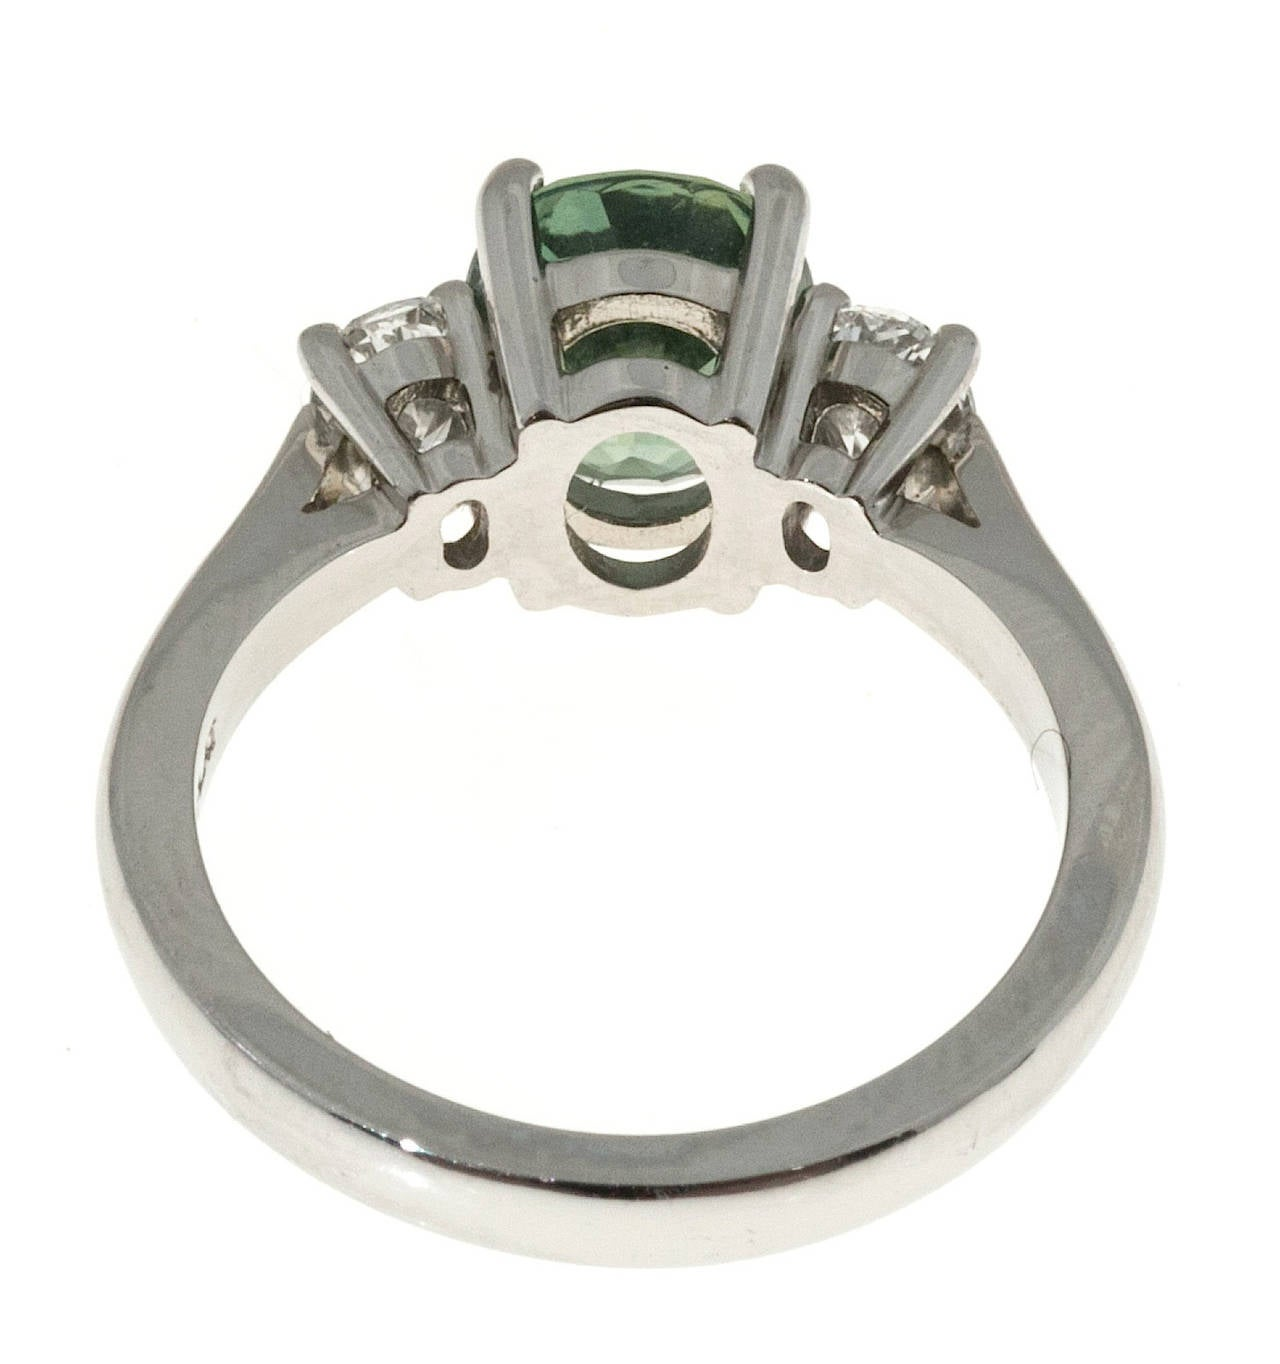 Peter Suchy Green Sapphire Diamond Three Stone Platinum Engagement Ring 7